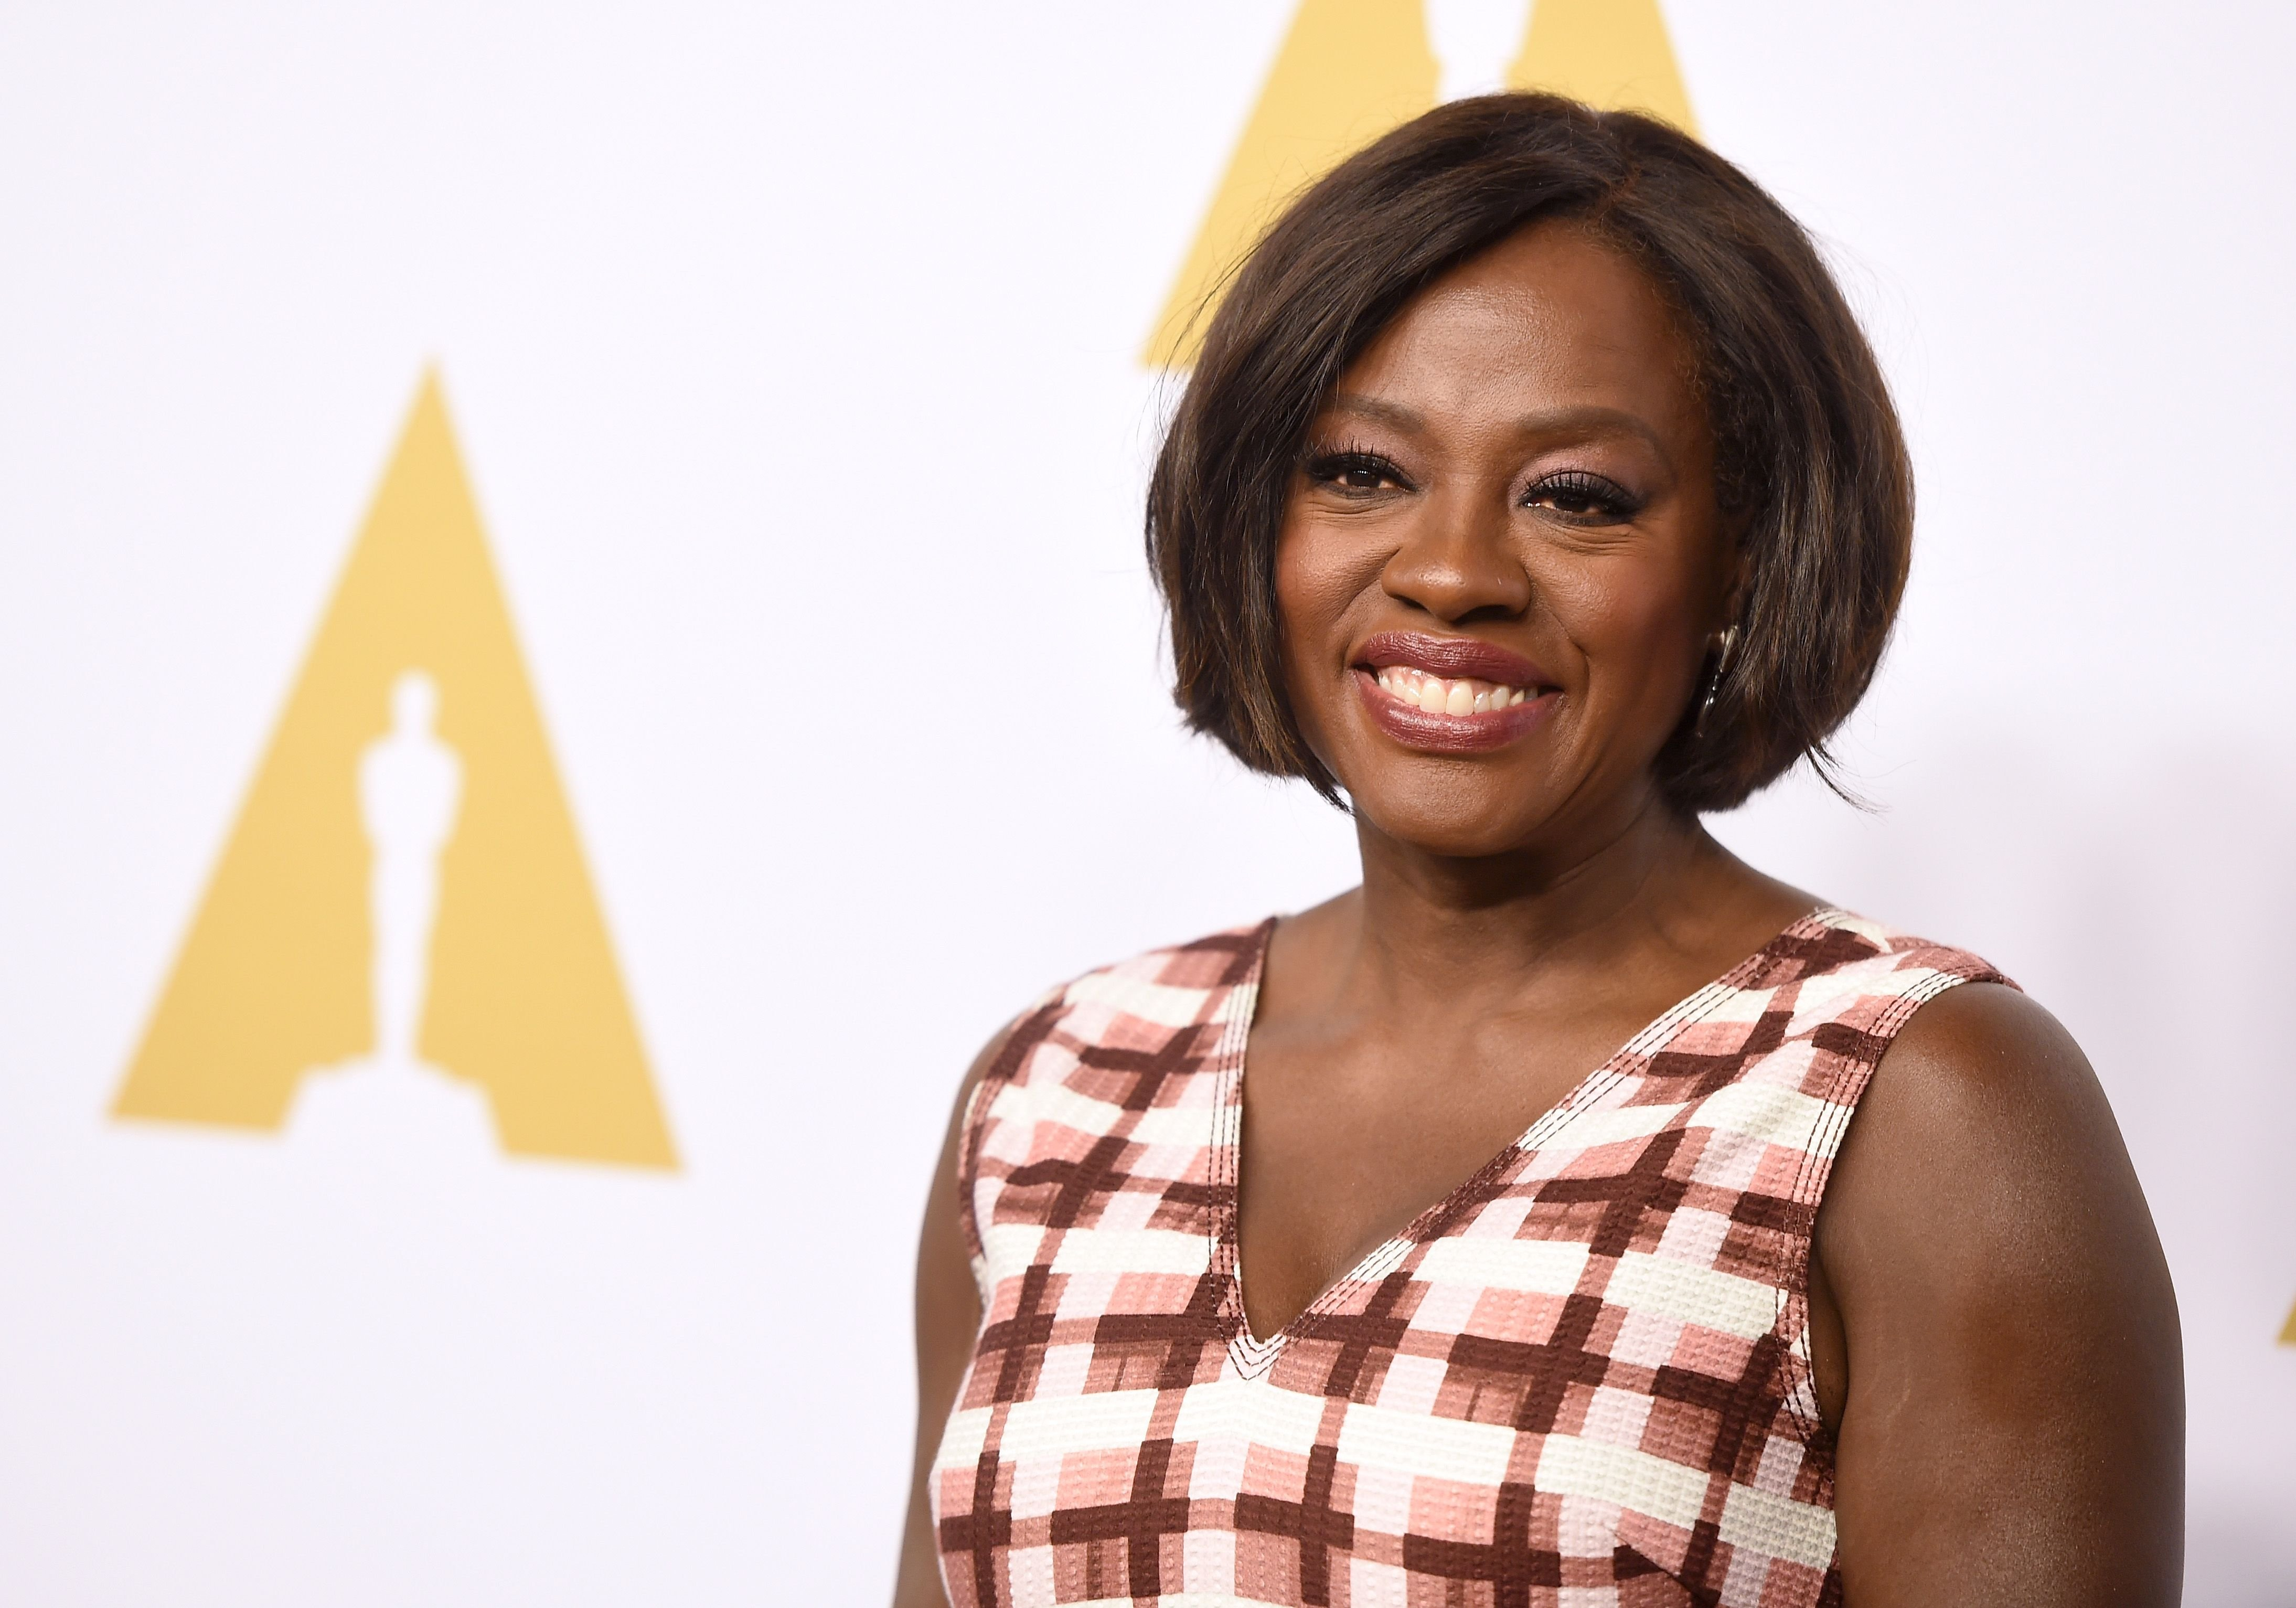 Actress Viola Davis attending the 89th Annual Academy Awards Nominee Luncheon on February 6, 2017 in Beverly Hills. | Photo: Getty Images